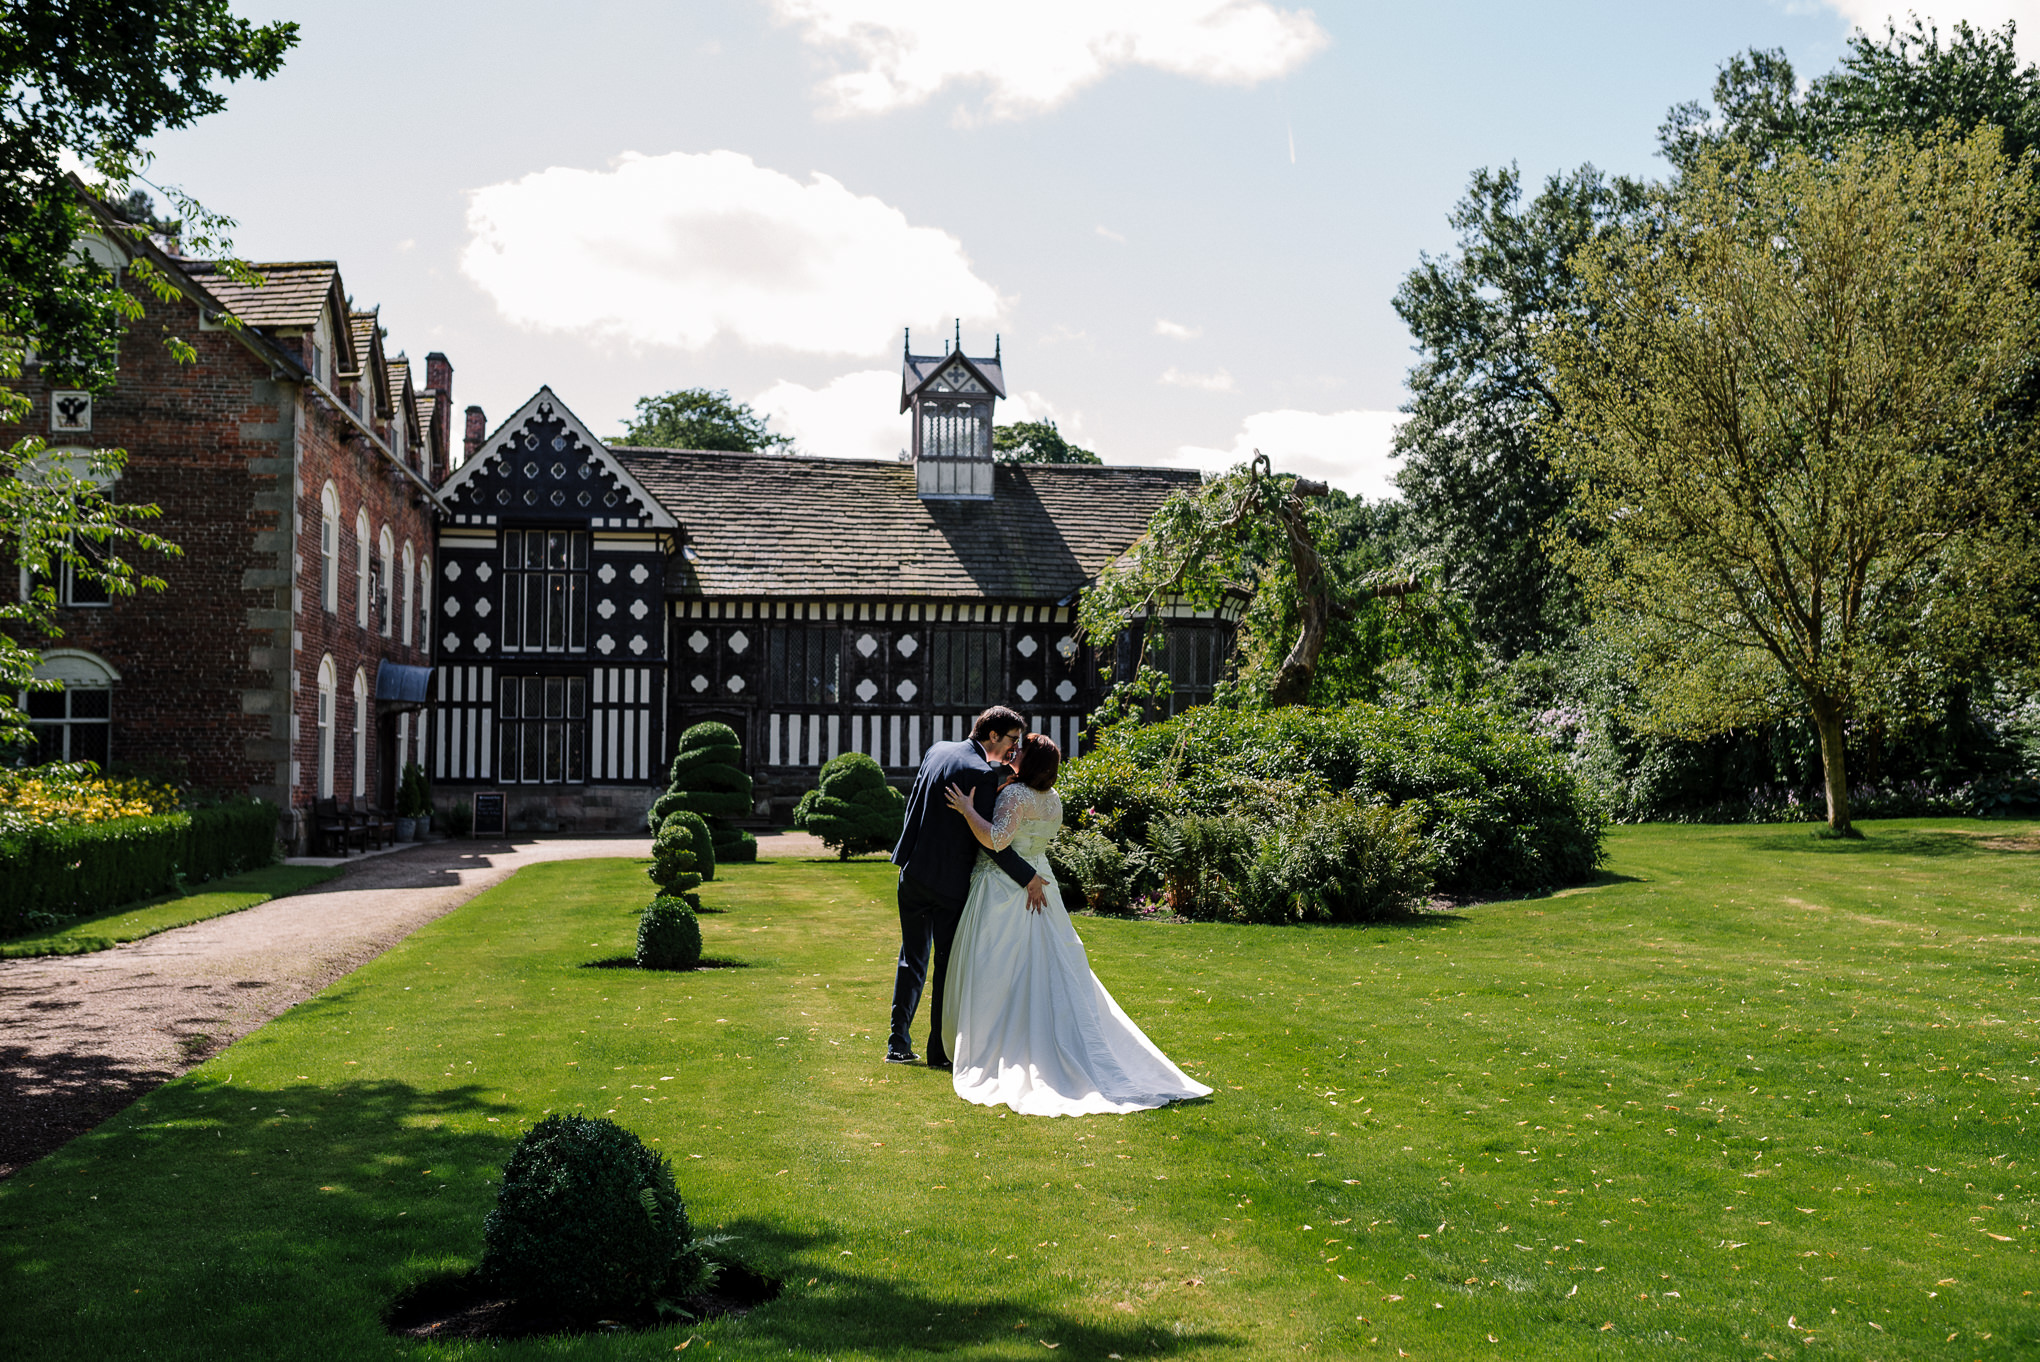 Walking in the gardens at Rufford Old Hall.